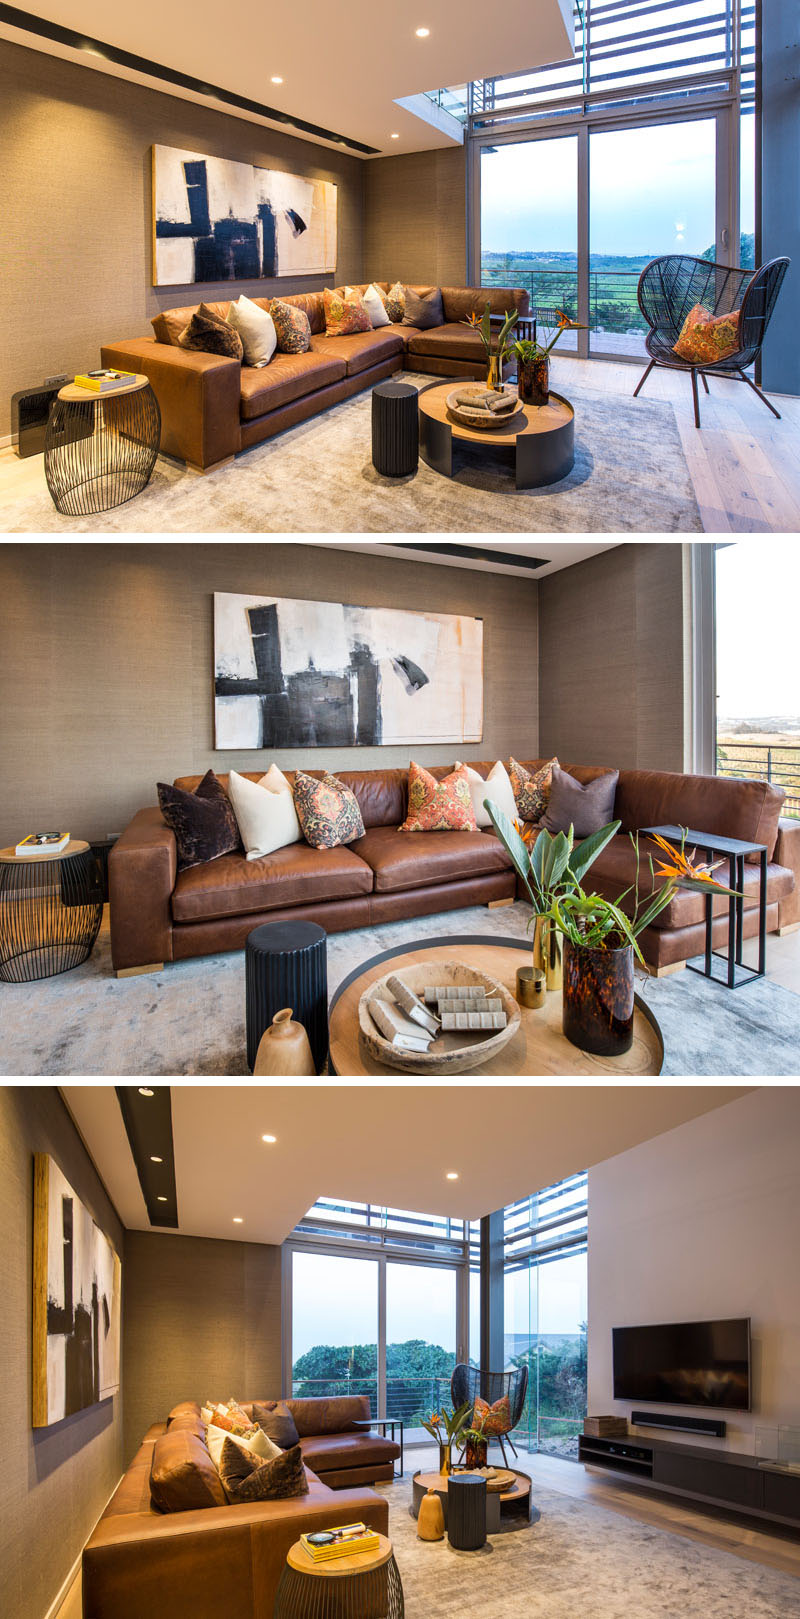 This modern living room, has a large L-shaped, brown leather couch and a black detailed chair provide seating. Warm earth tone colors used in the decor and fabrics, compliment the mounted art piece above the couch.